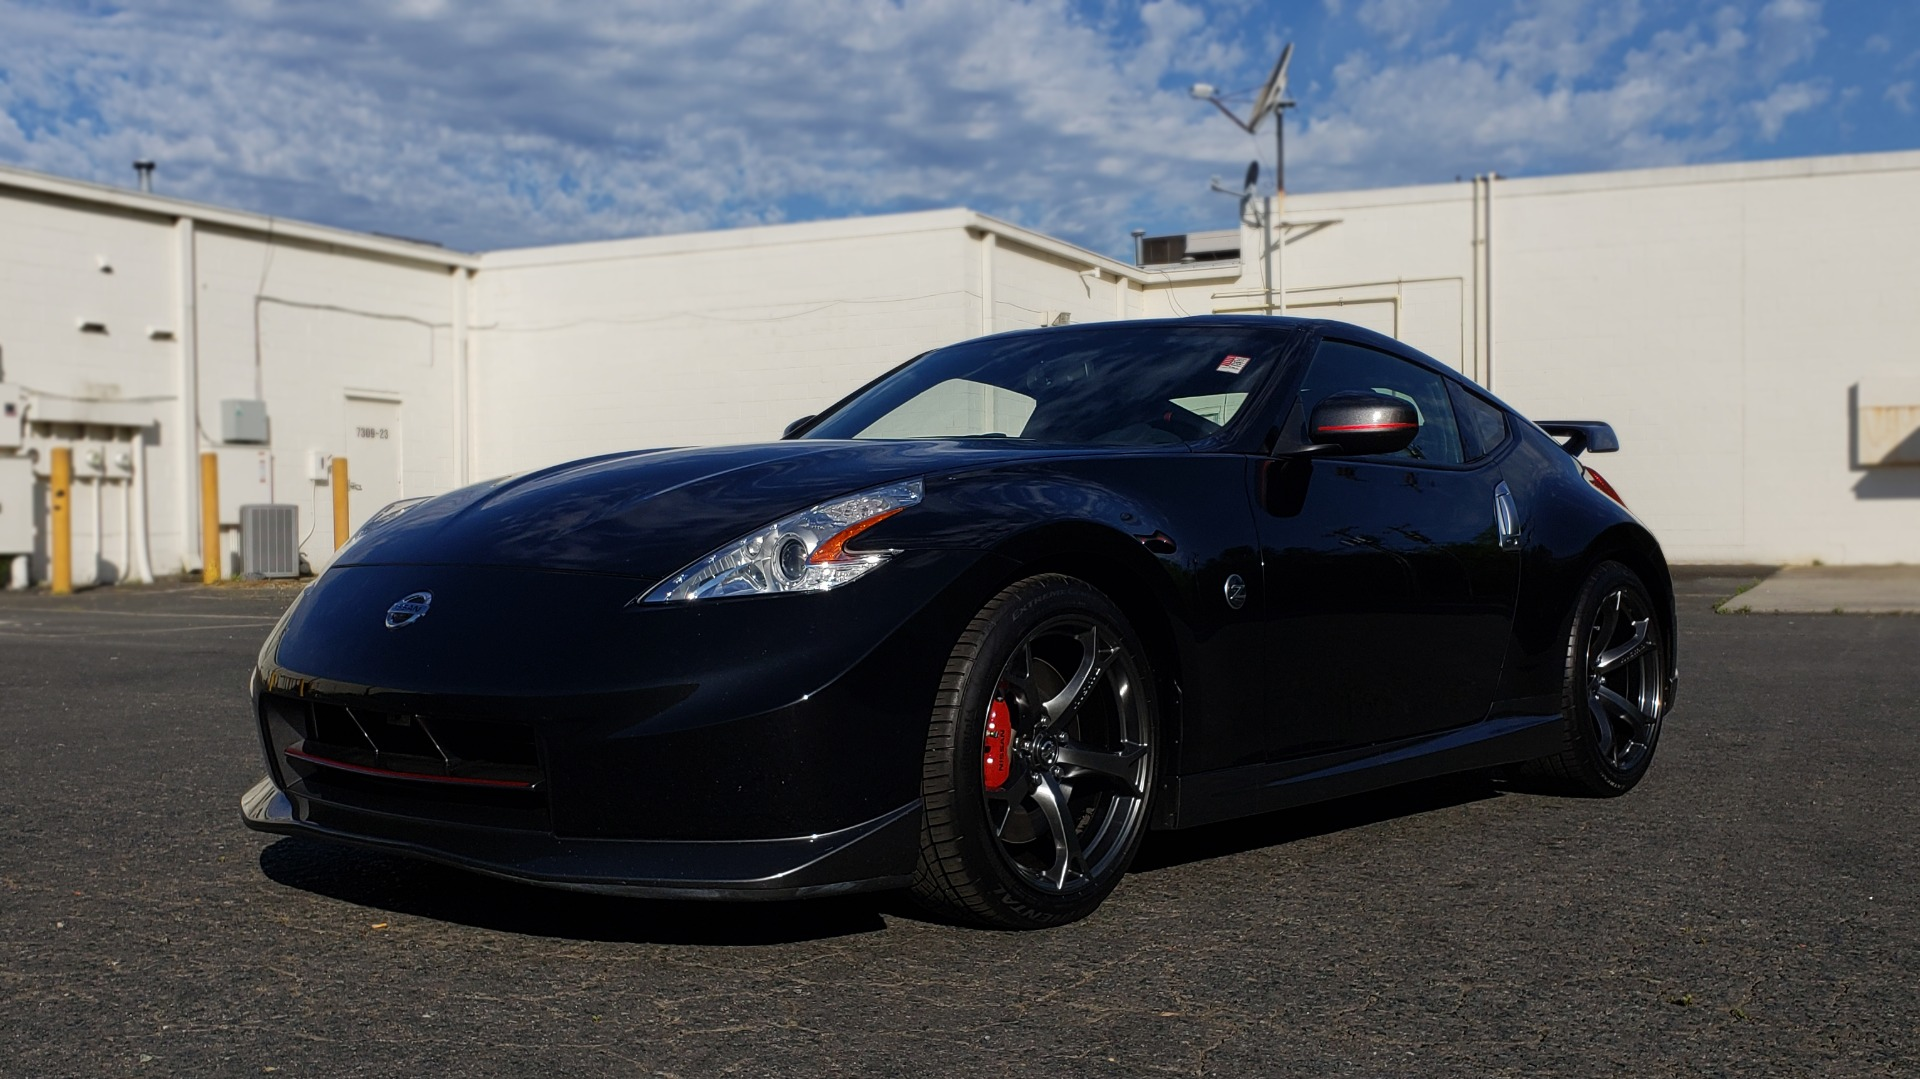 Used 2014 Nissan 370Z NISMO / 6-SPD MAN / BOSE / 6-DISC CHANGER / NISMO MATS / REARVIEW for sale Sold at Formula Imports in Charlotte NC 28227 1